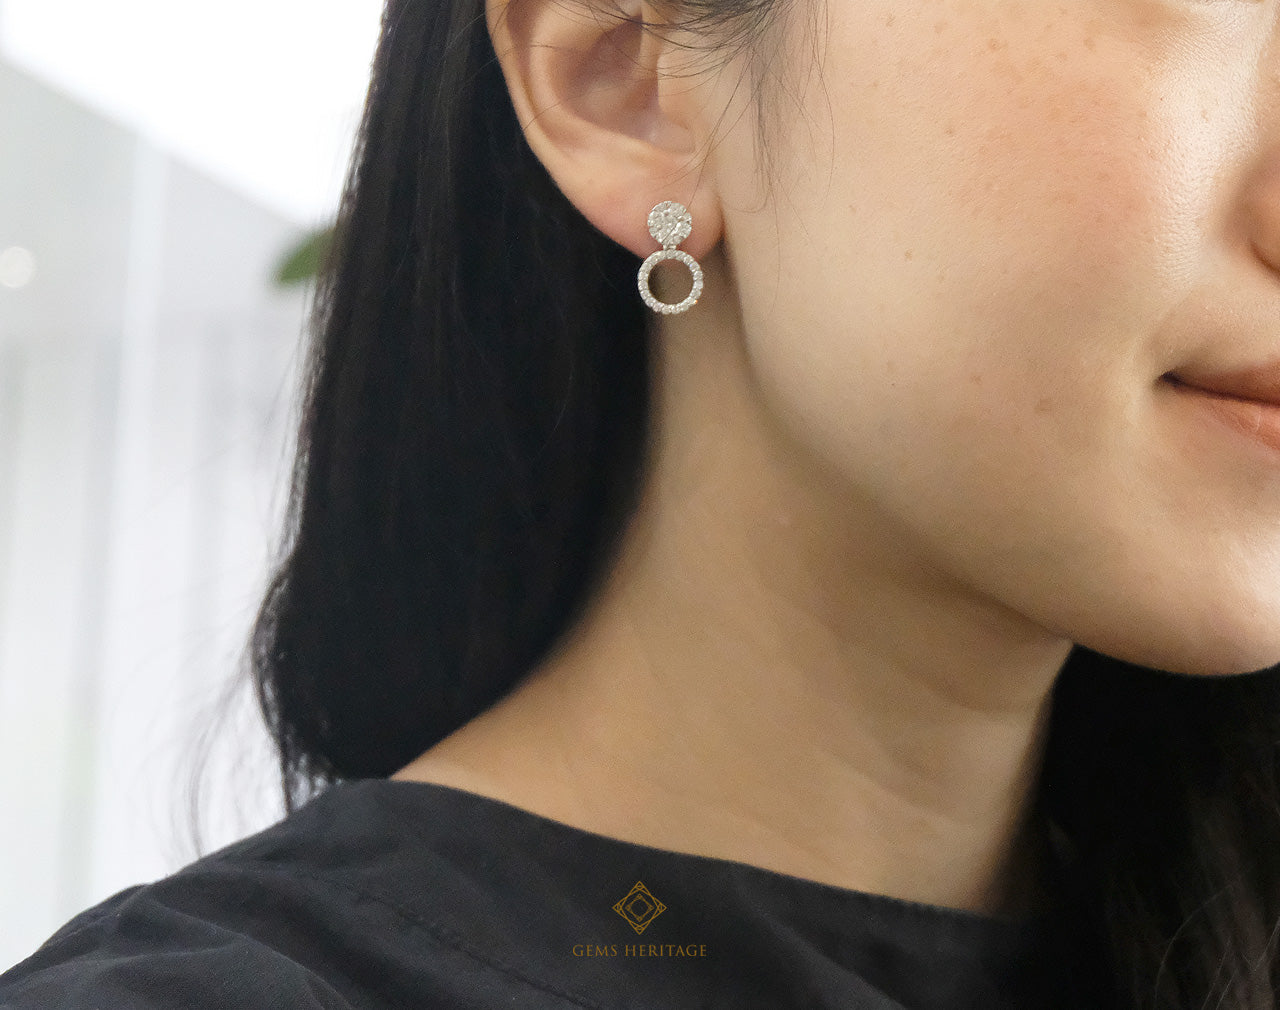 Round illusion earring with adaptable drop dewn halo